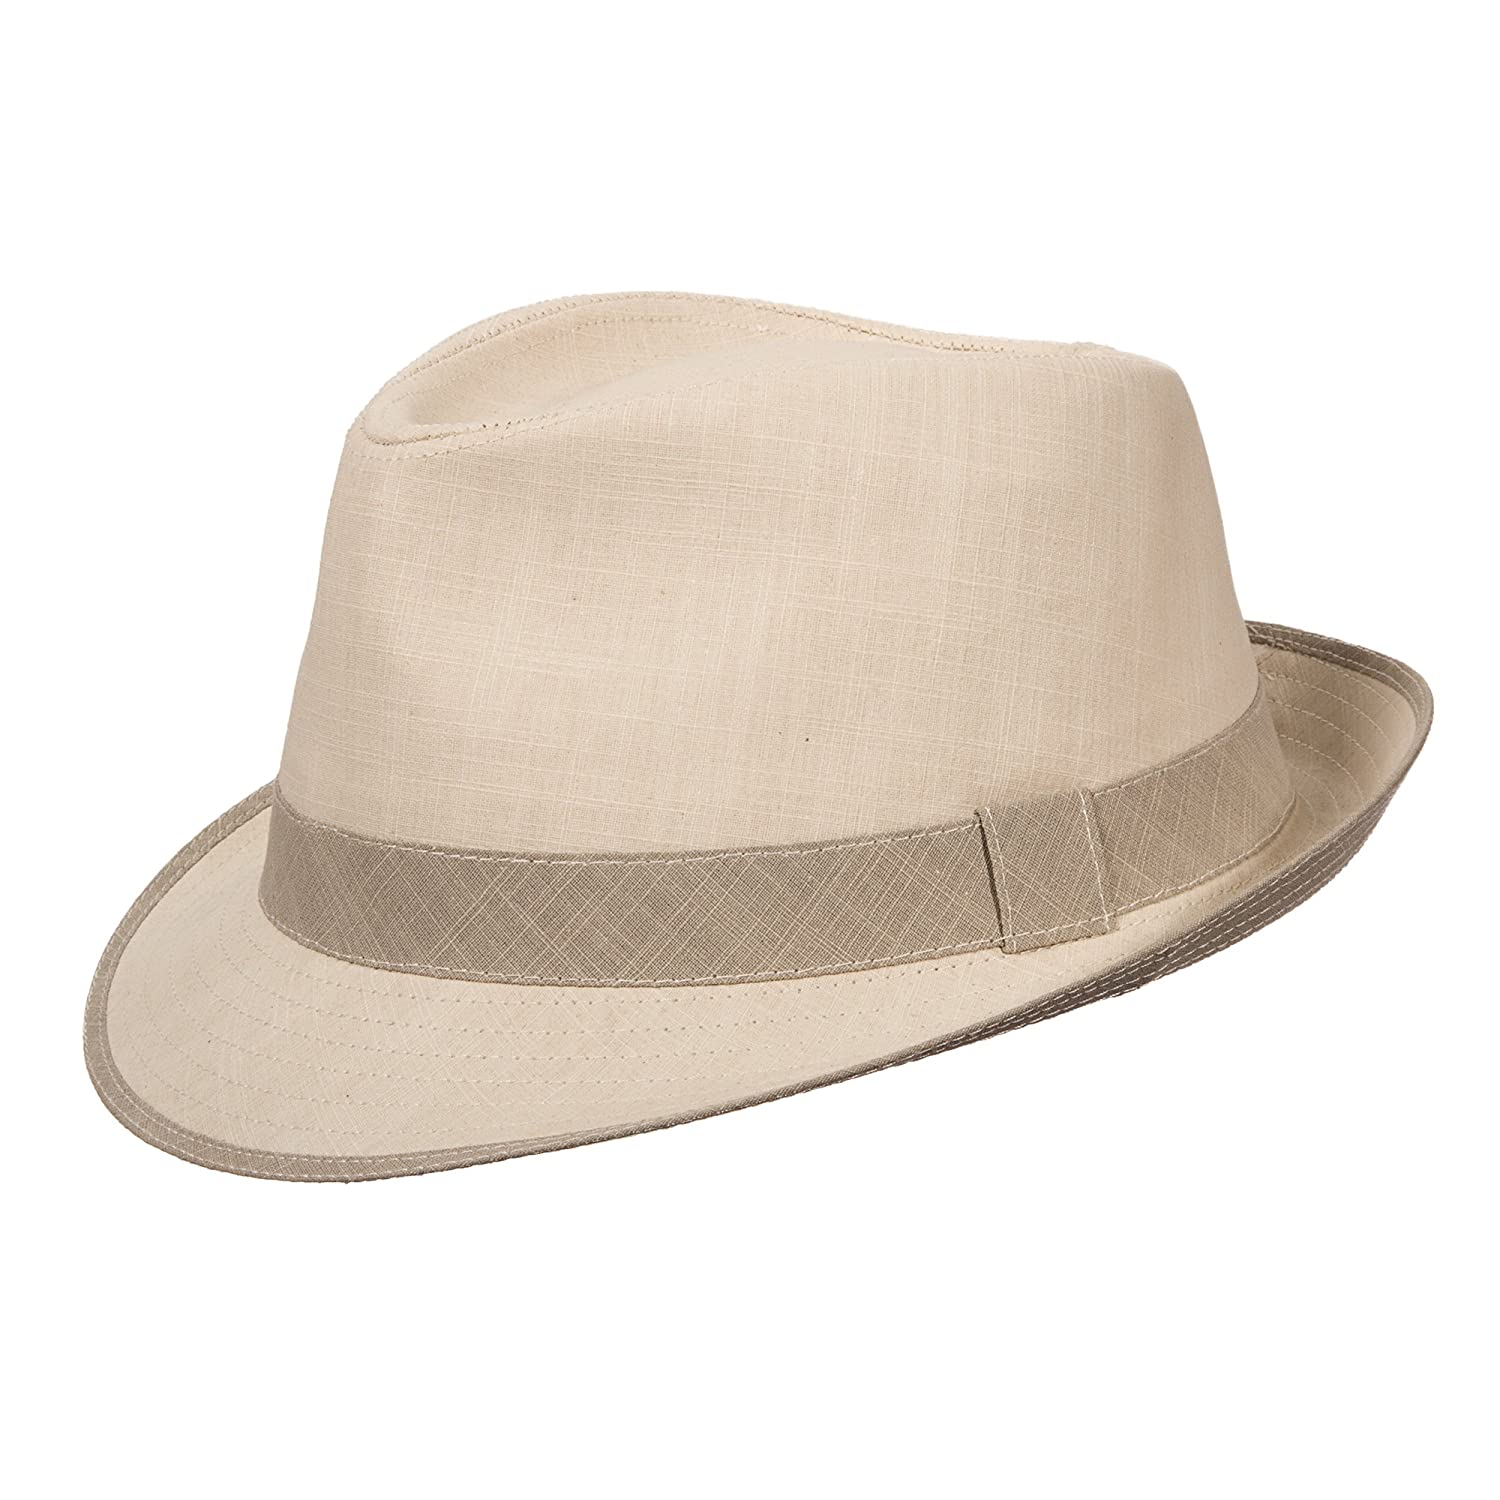 e3ed781e Stetson Cotton Fedora With Contrast Trim Hat (L, Natural) at Amazon Men's  Clothing store: